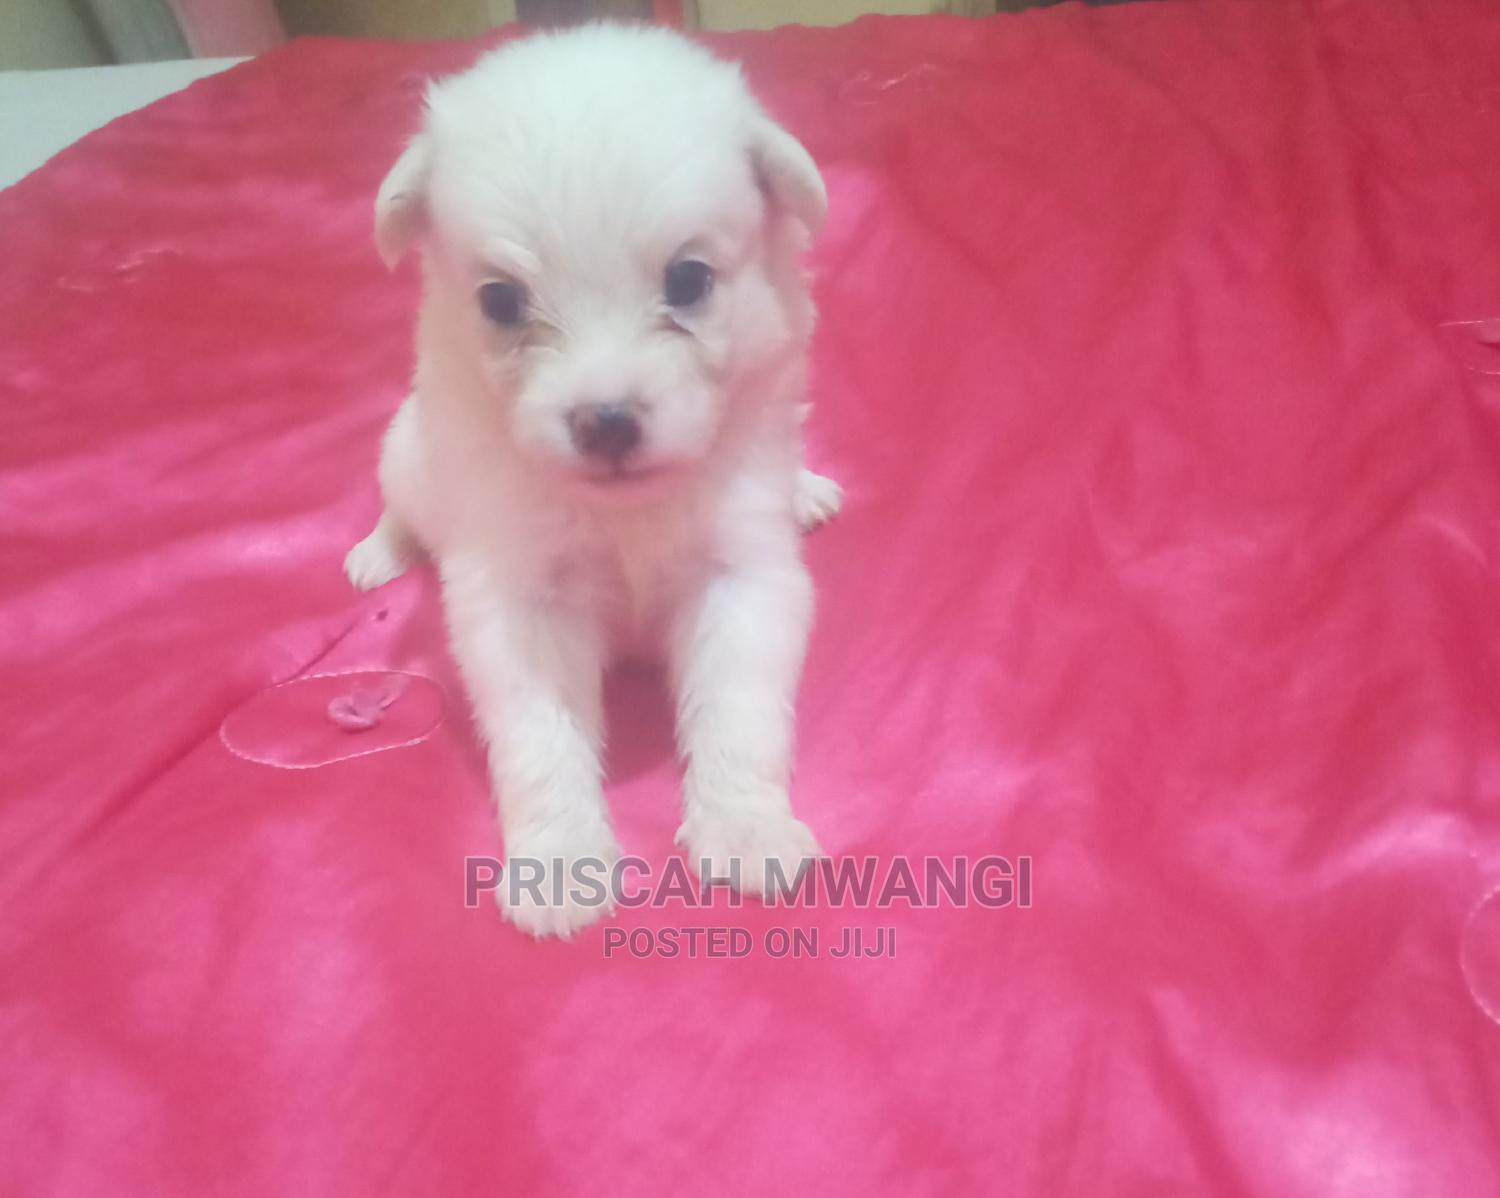 Archive: 0-1 Month Male Mixed Breed Japanese Spitz